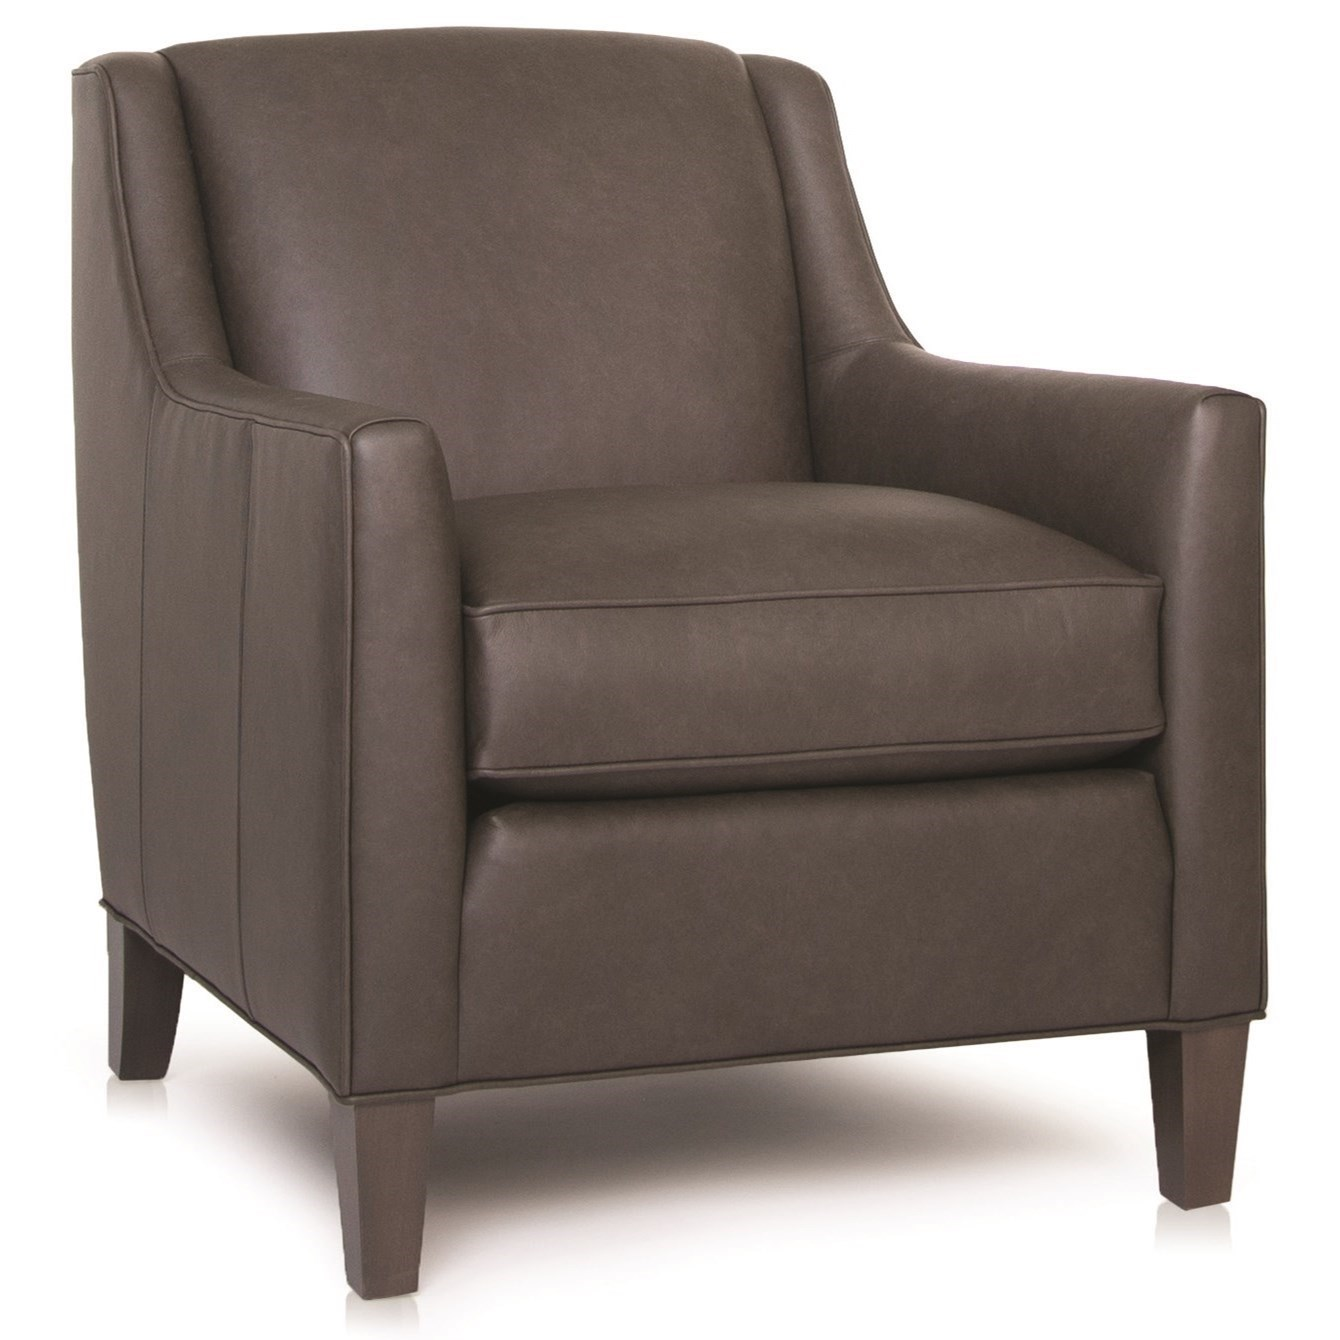 248 Chair by Smith Brothers at Story & Lee Furniture